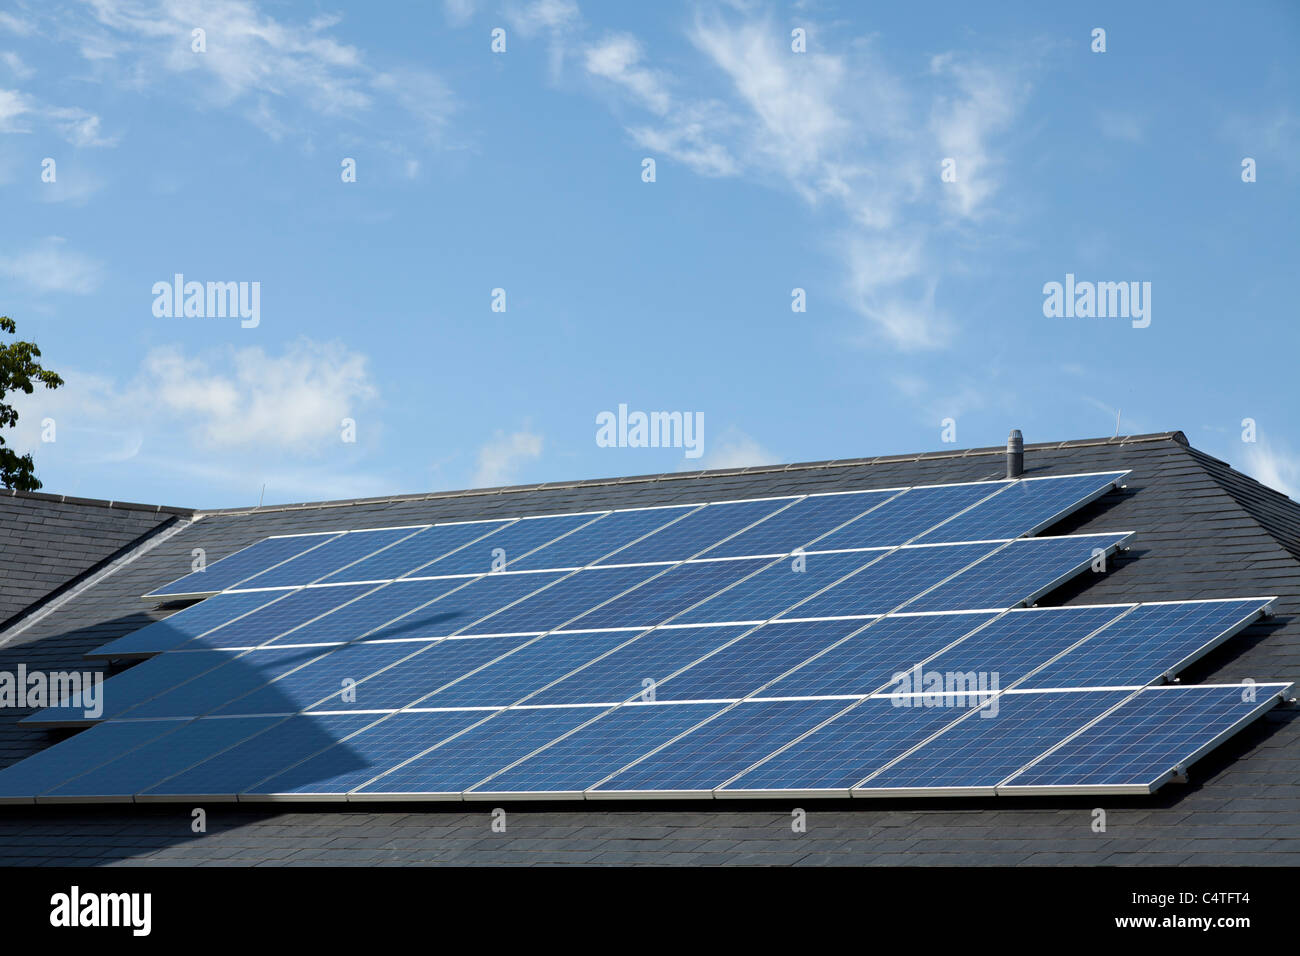 Solar panels on pitched roof  of commercial building - Stock Image